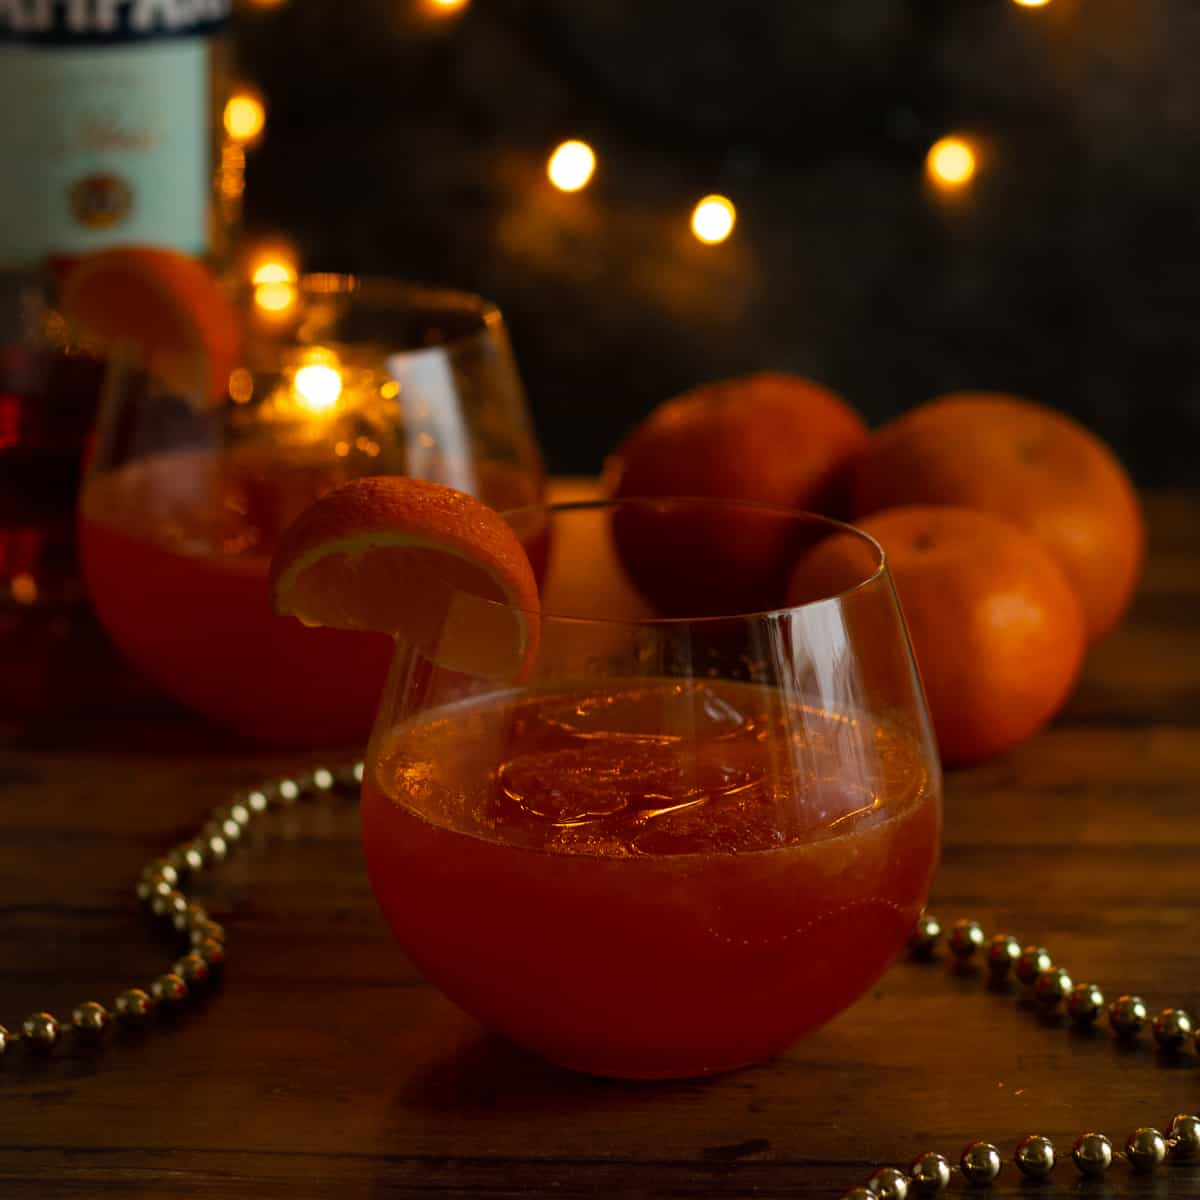 a clementine campari spritz with clementines and a bottle of campari in the background